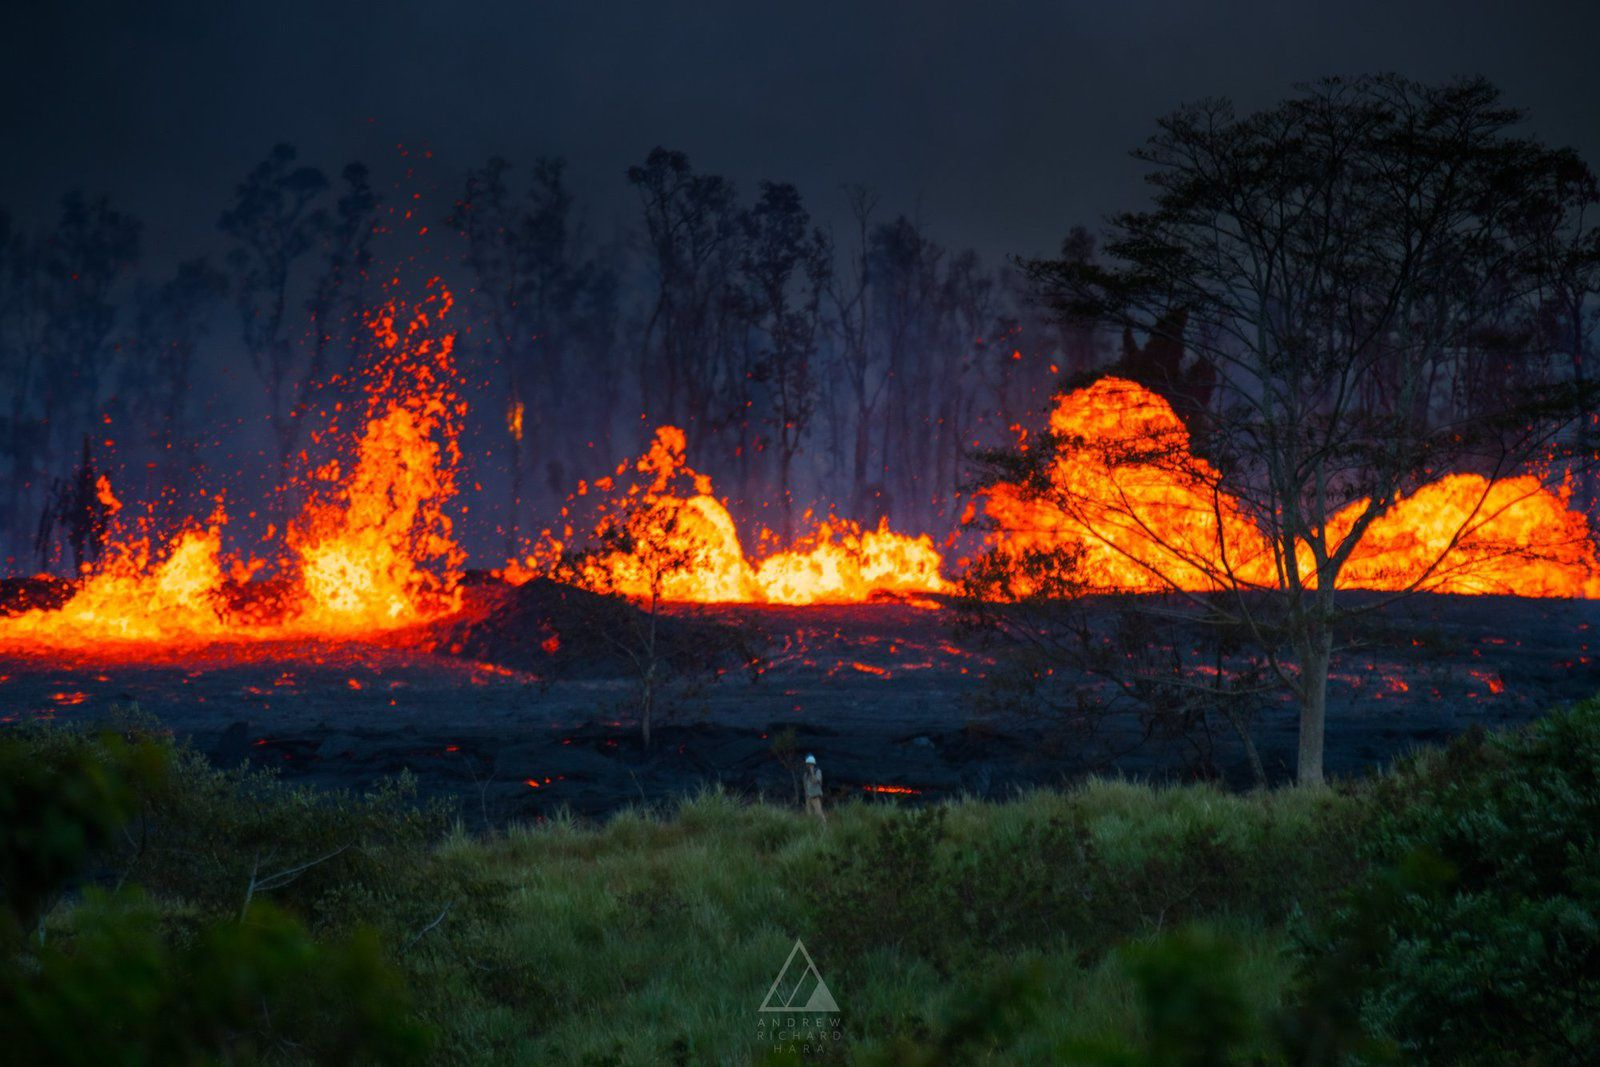 Kilauea - East rift zone 19.05.2018 -  active fissure - a men give the scale - photo Andrew Hara